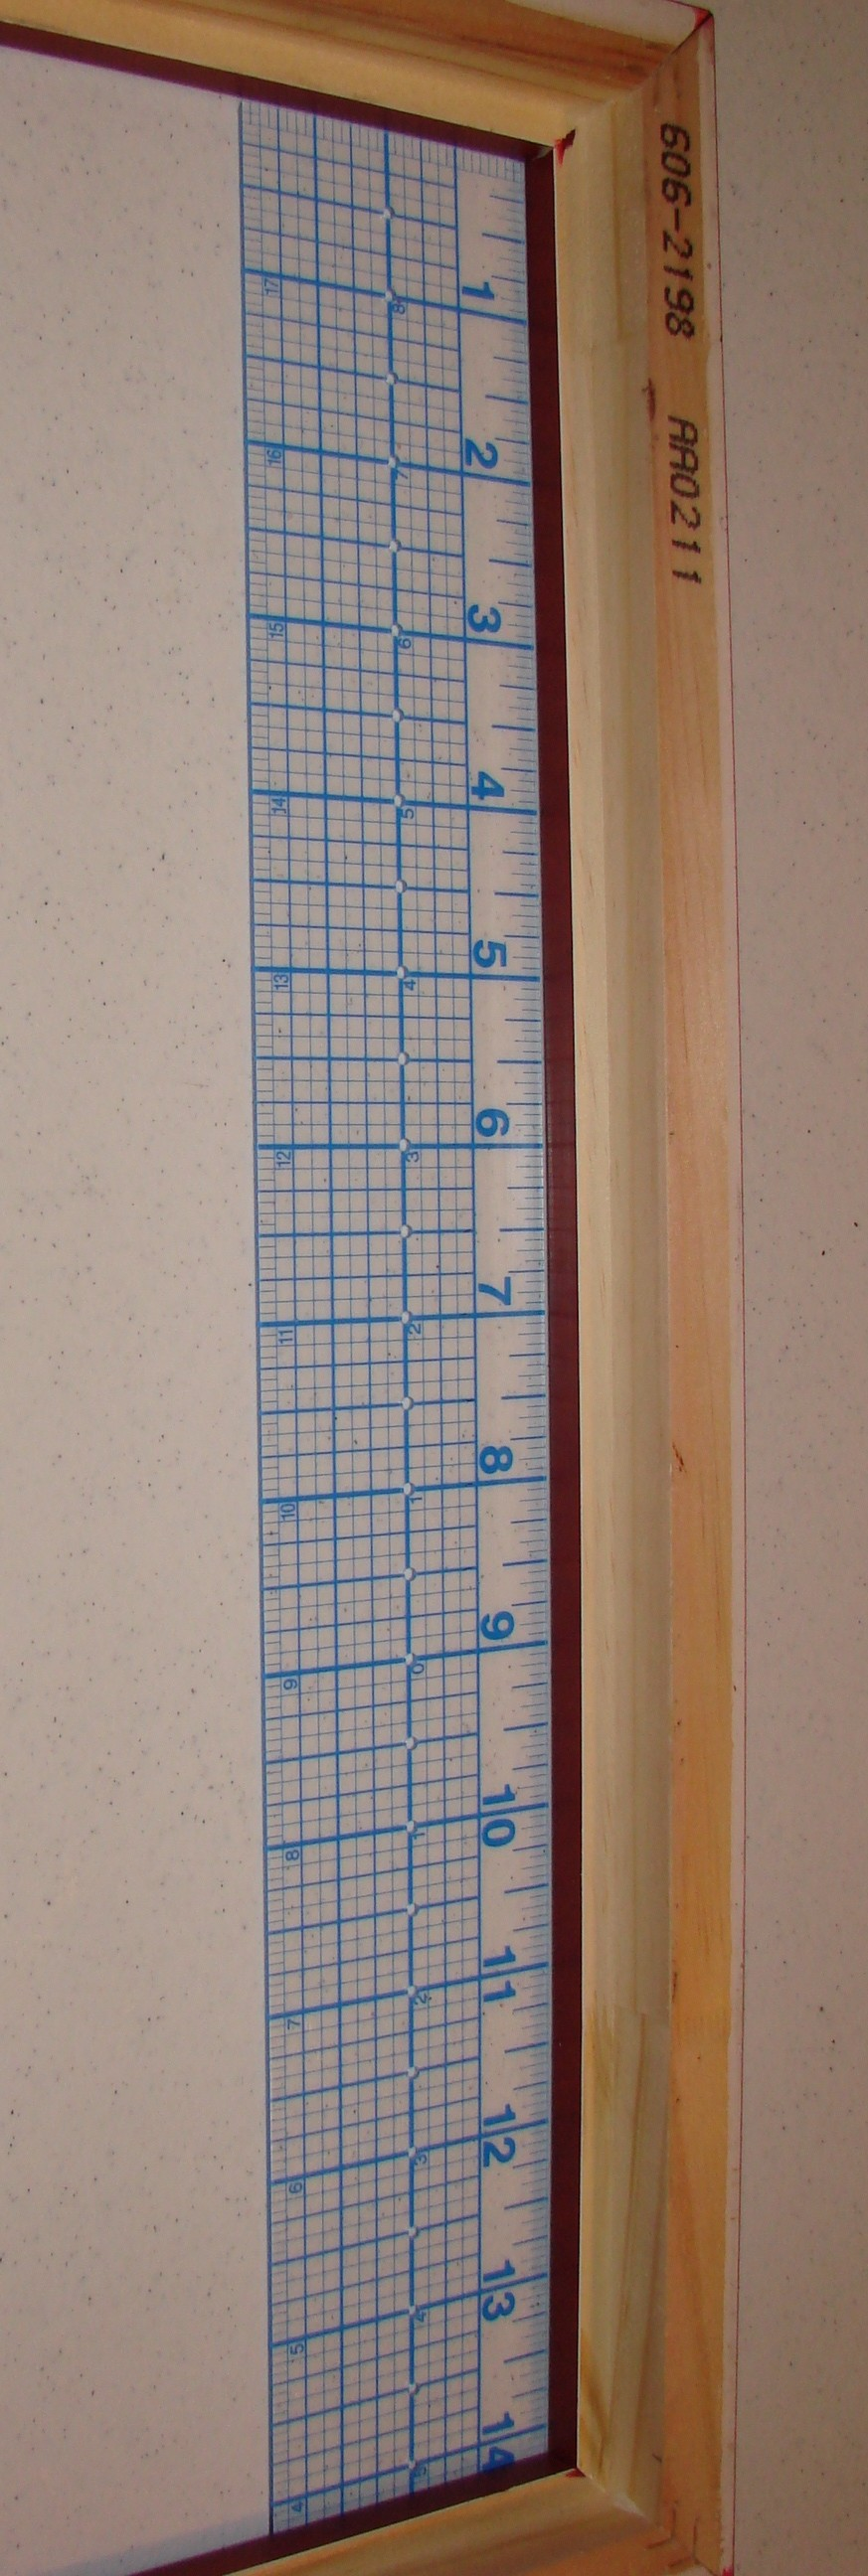 Displaying 18> Images For - Height Measurement Scale...